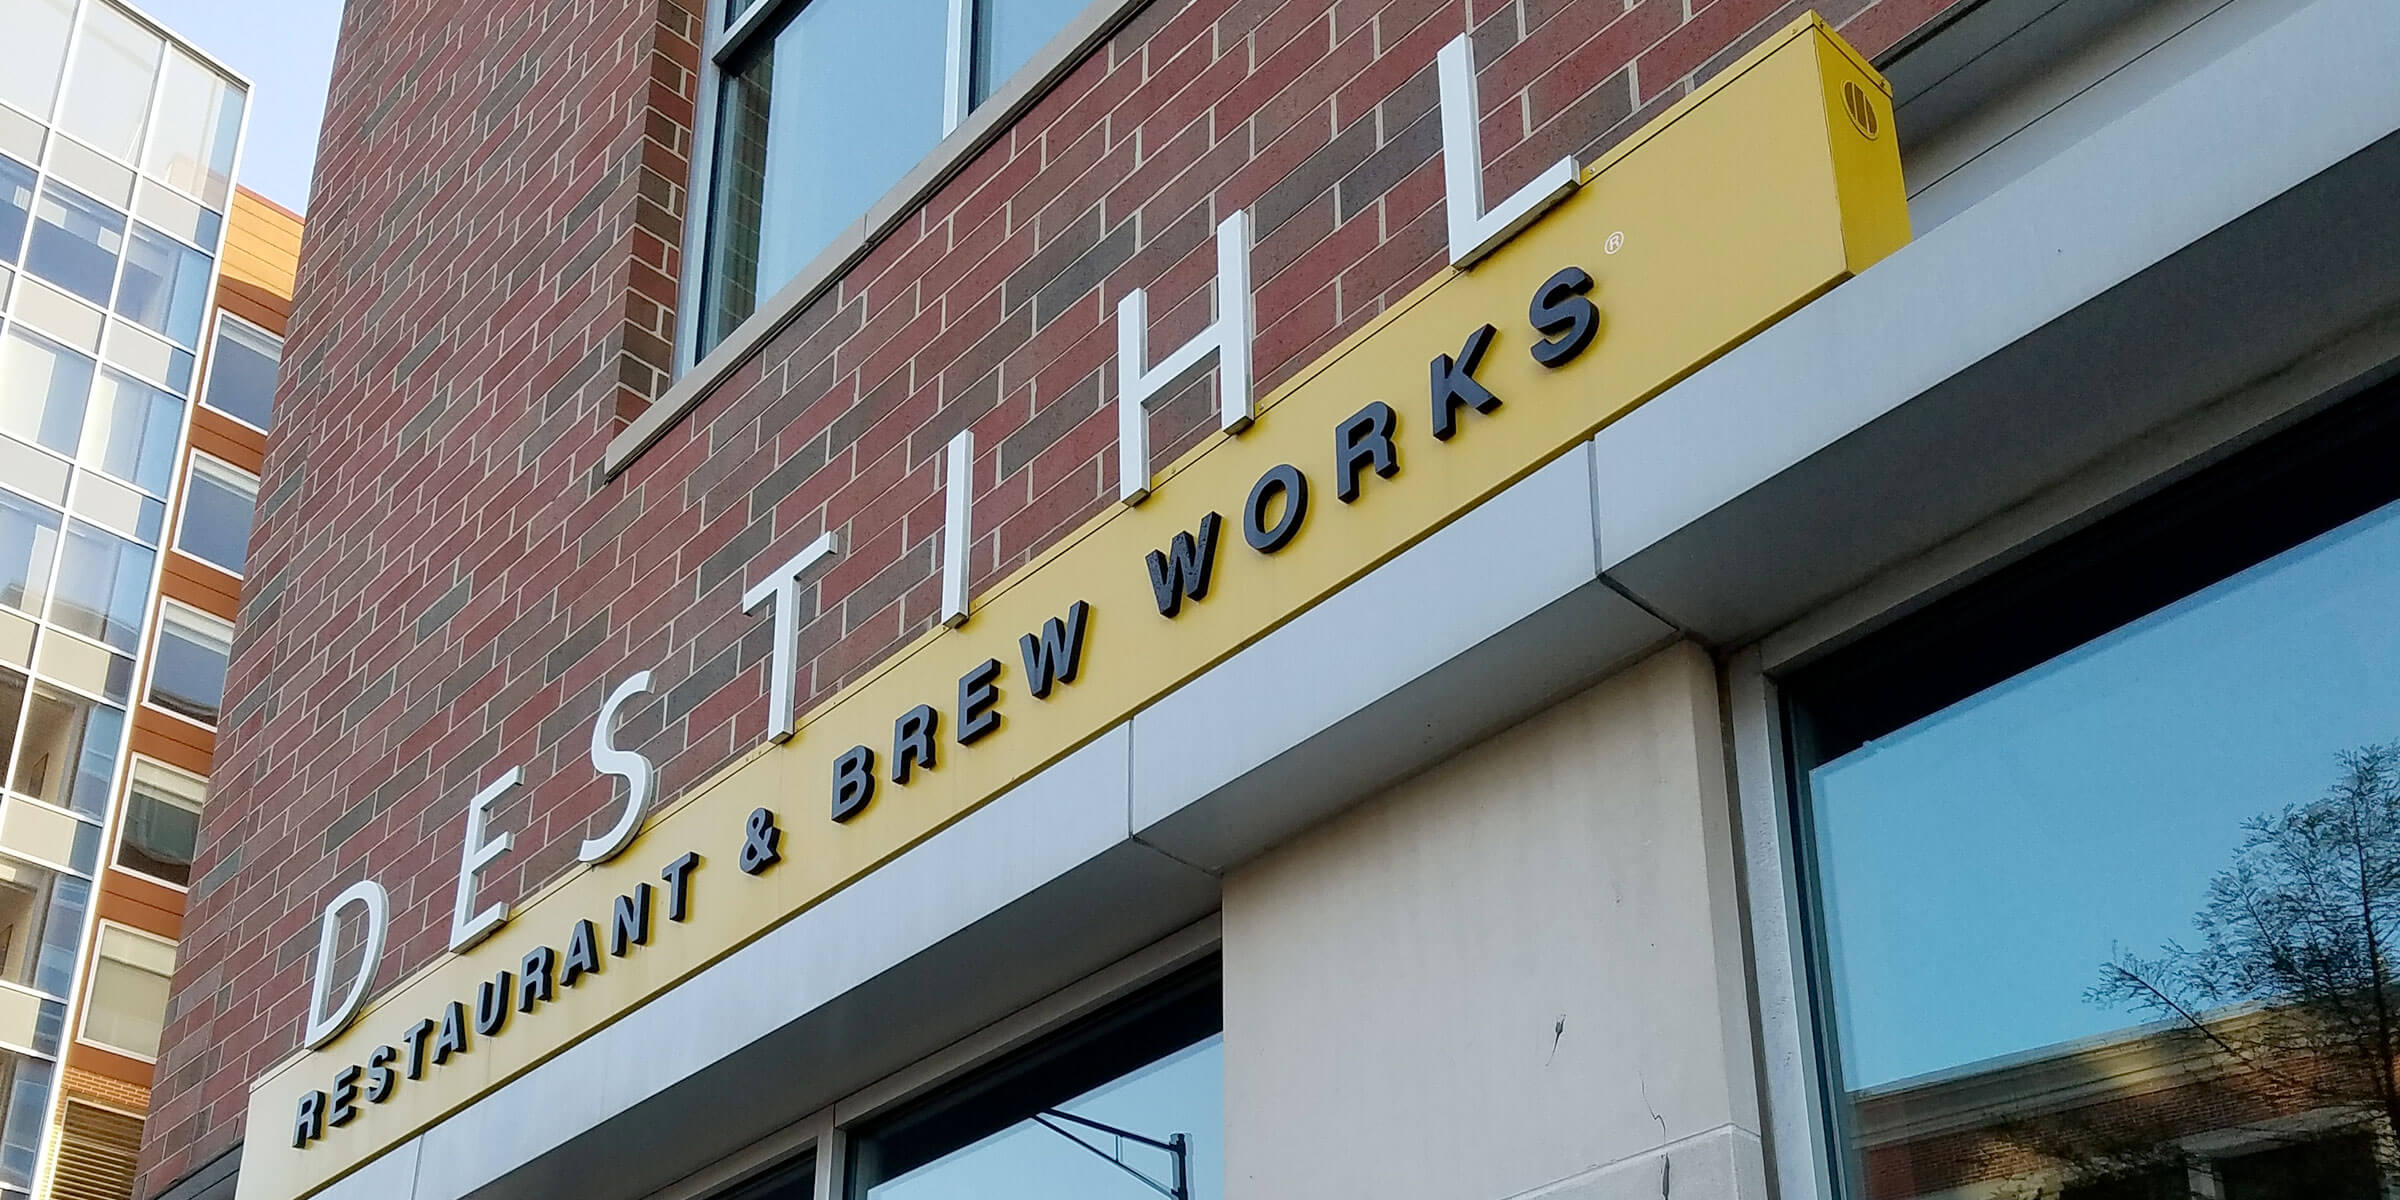 Signage above the entrance to the DESTIHL Brewery in Champaign, Illinois